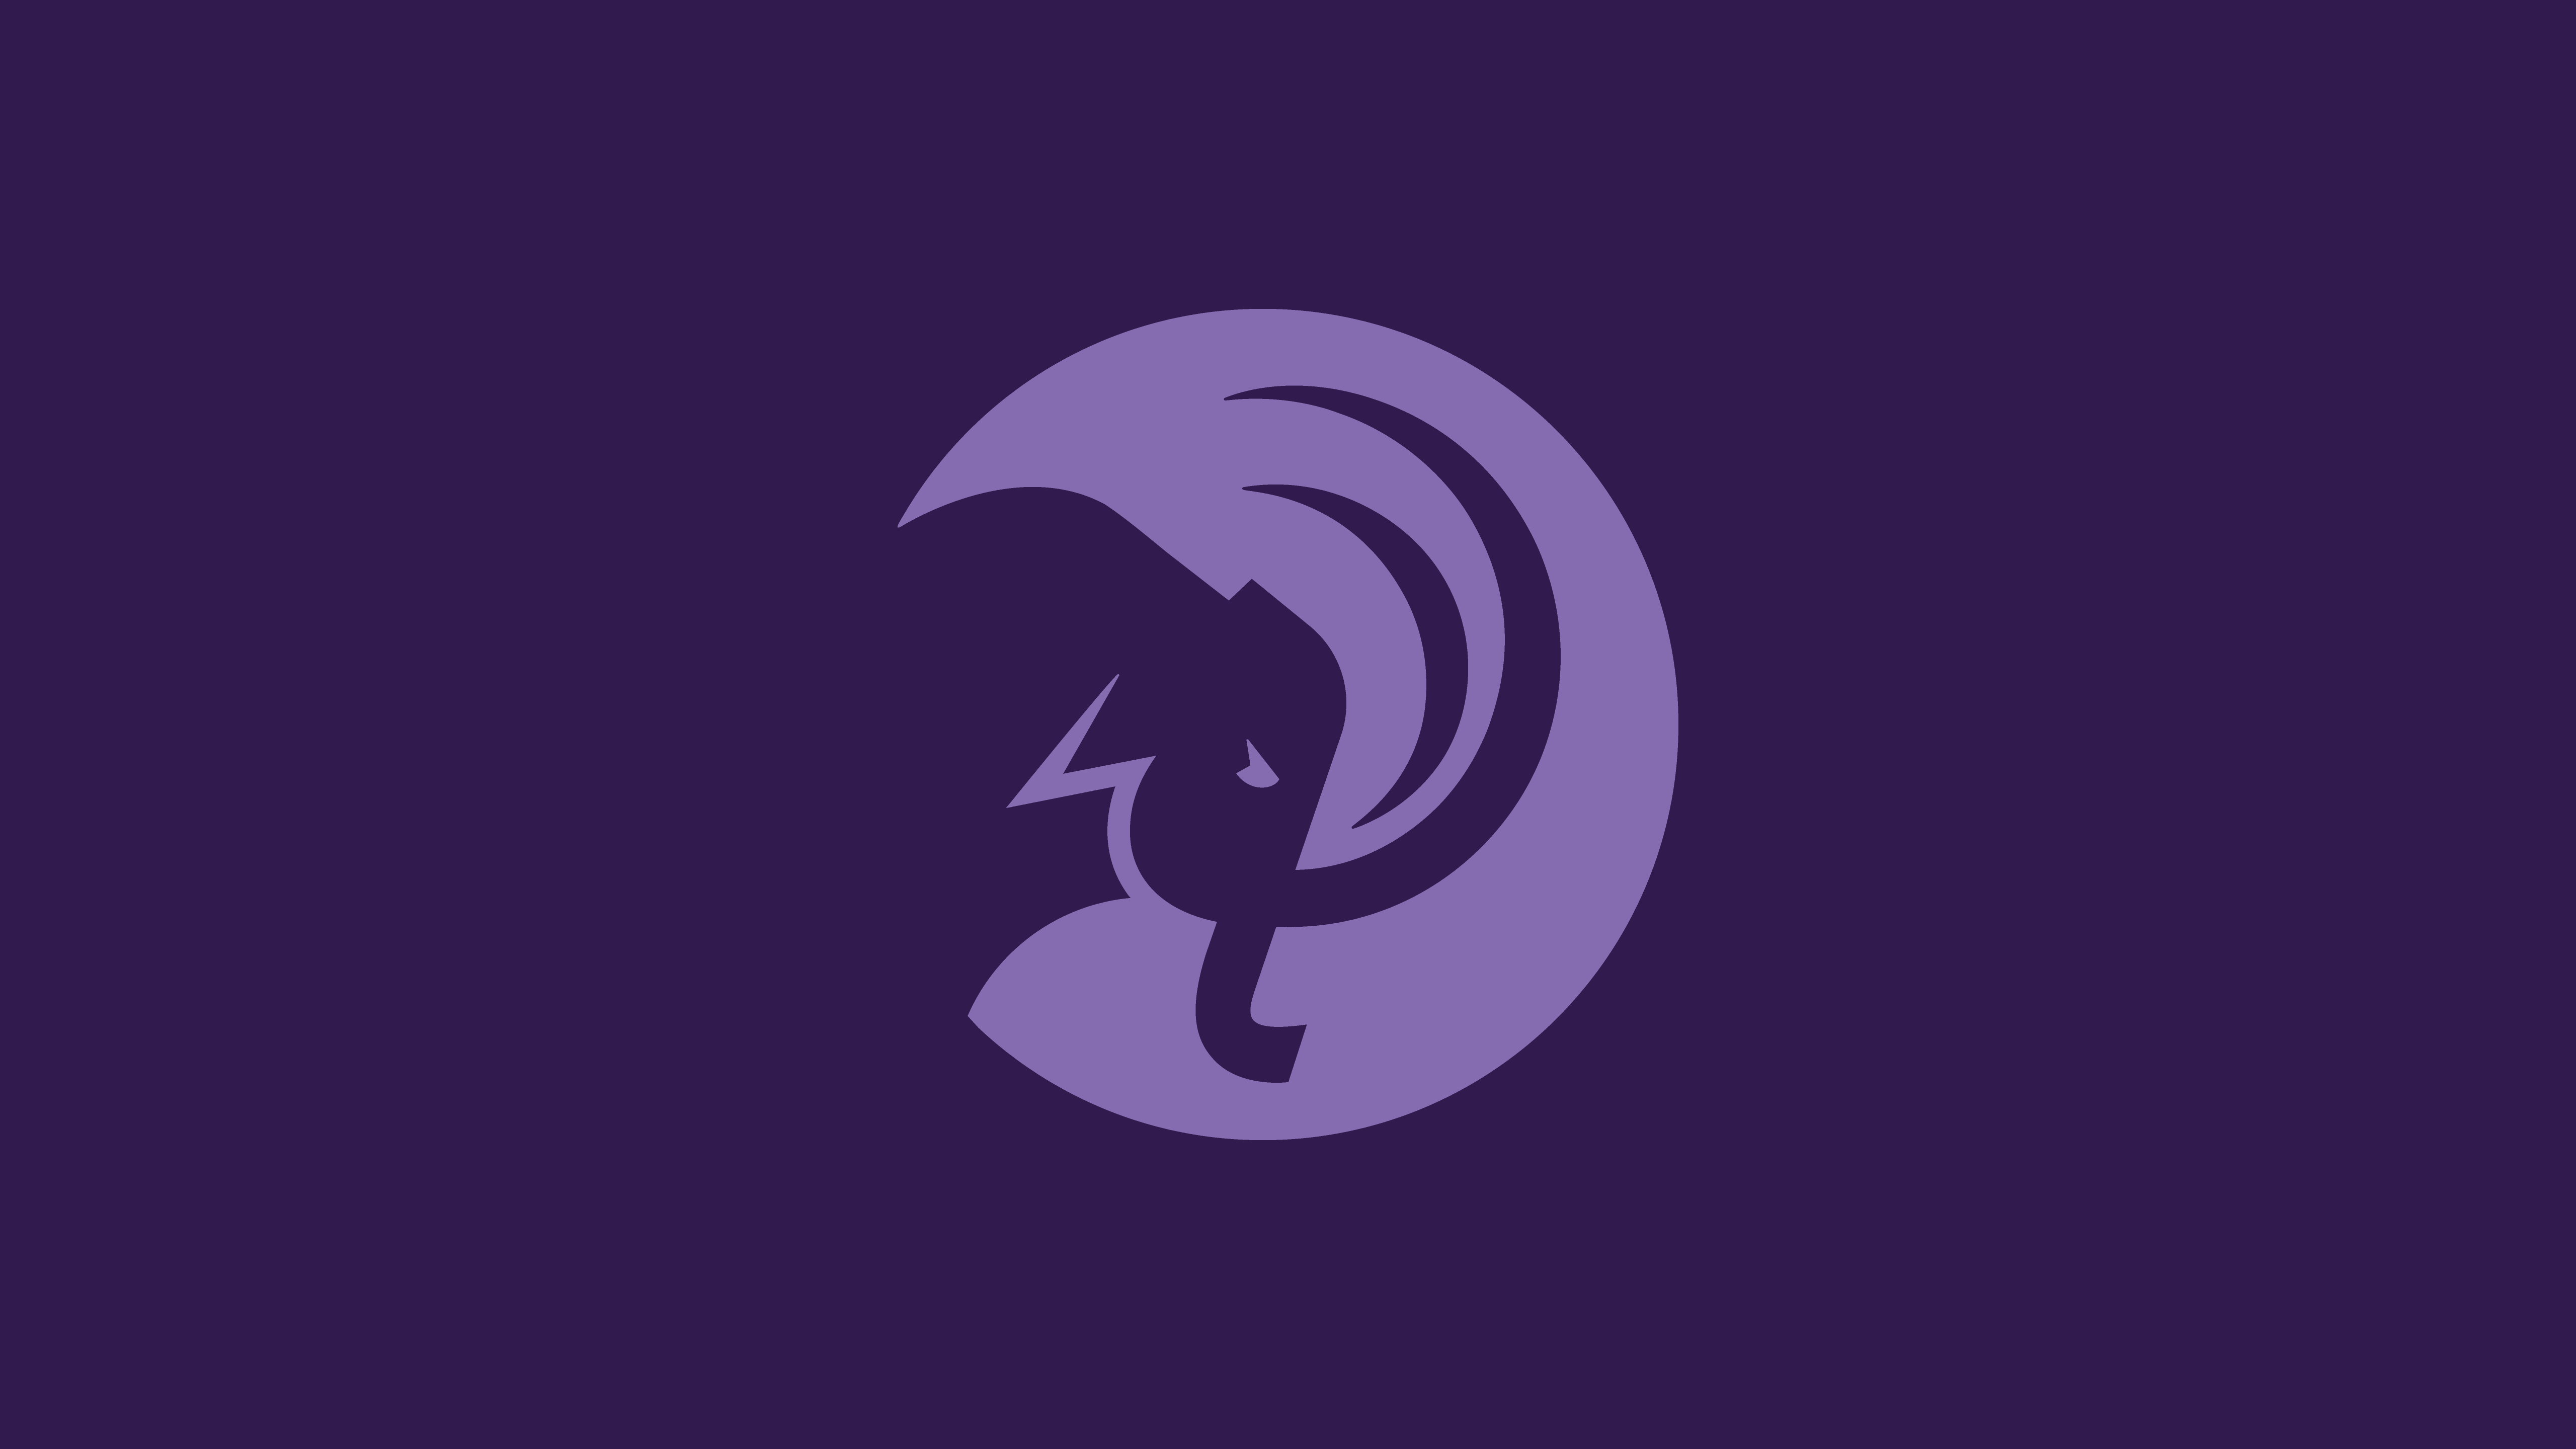 Light purple mammoth head circular logo on darker purple background